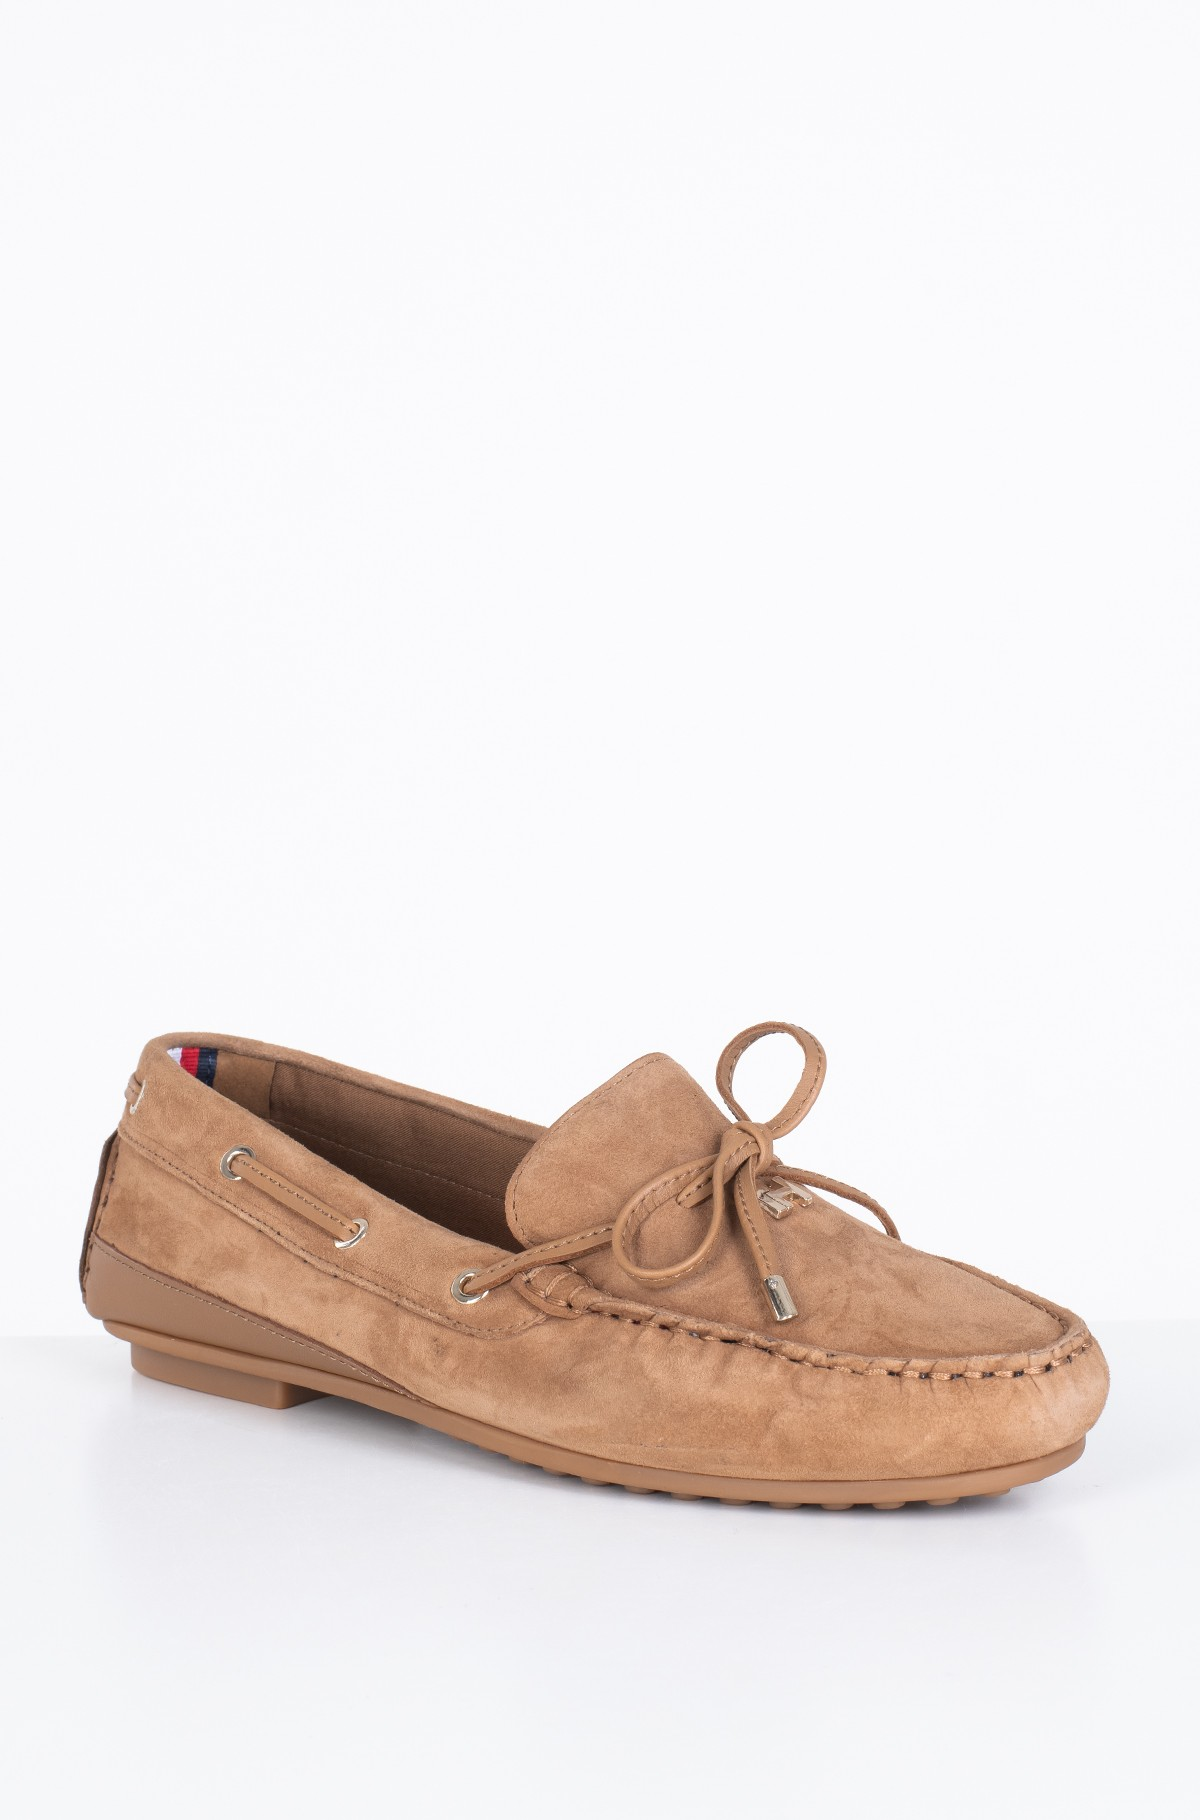 Mokasinai  ELEVATED TH HARDWARE MOCCASSIN-full-2